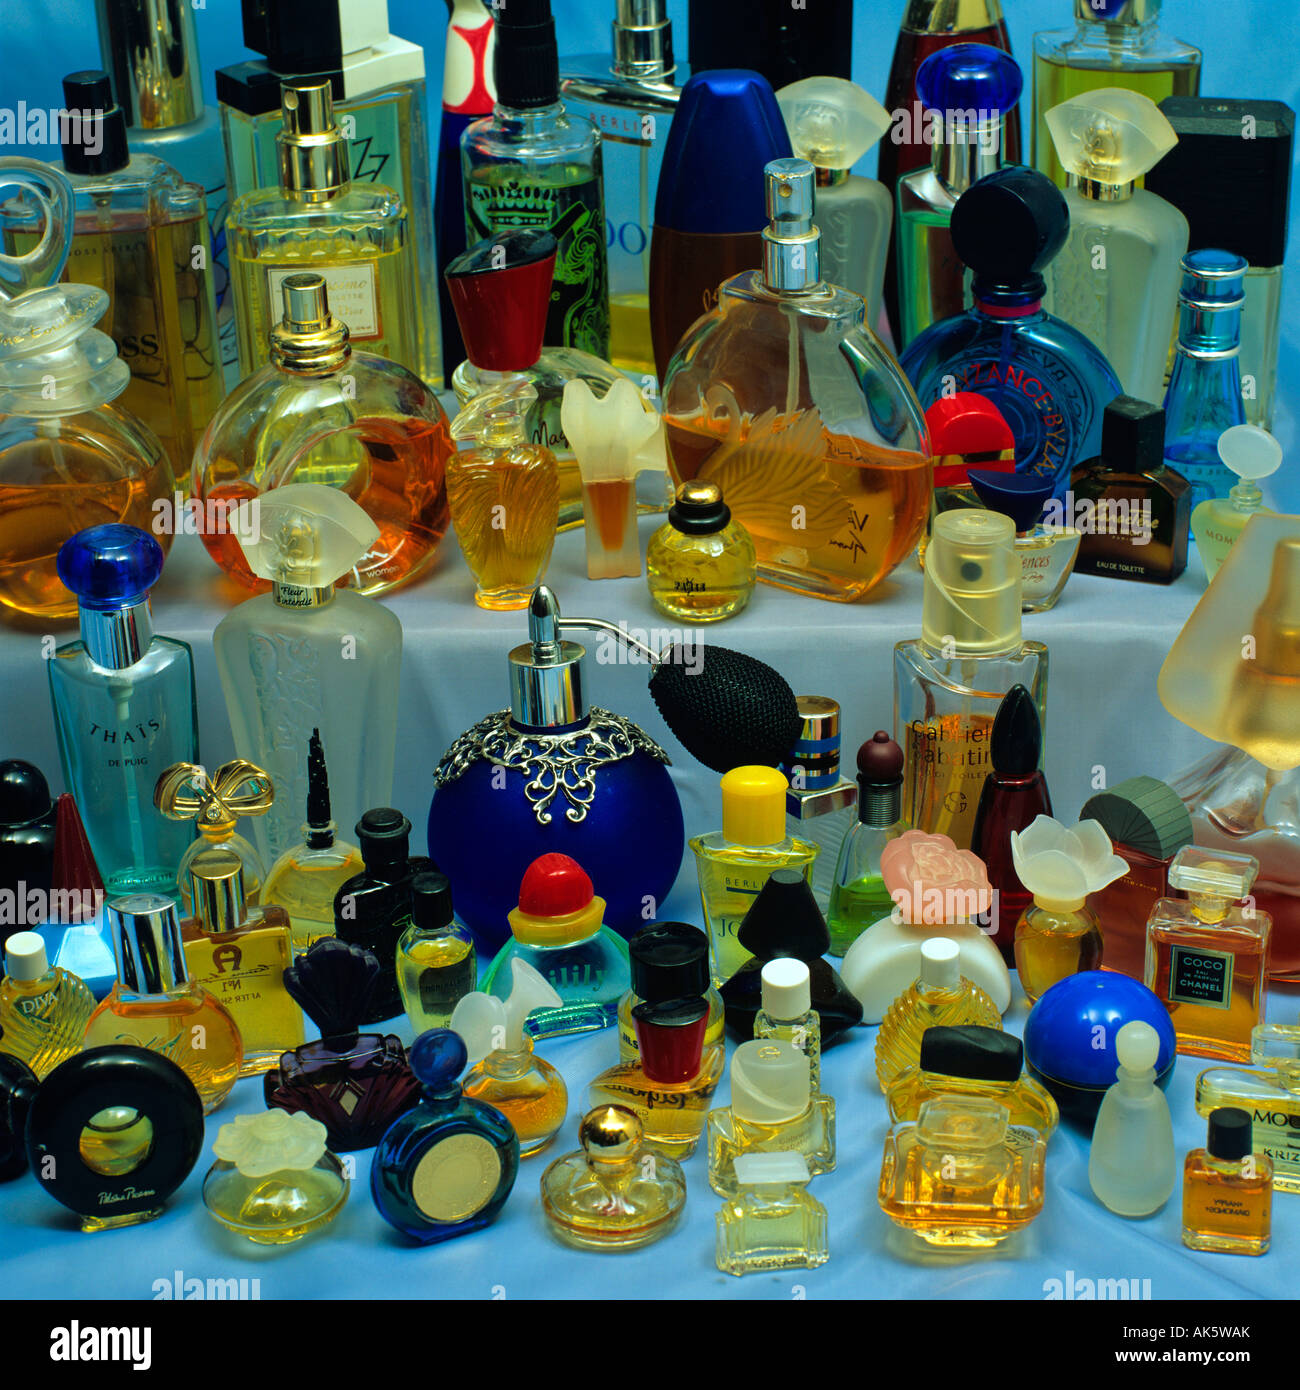 Bottles of perfume - Stock Image